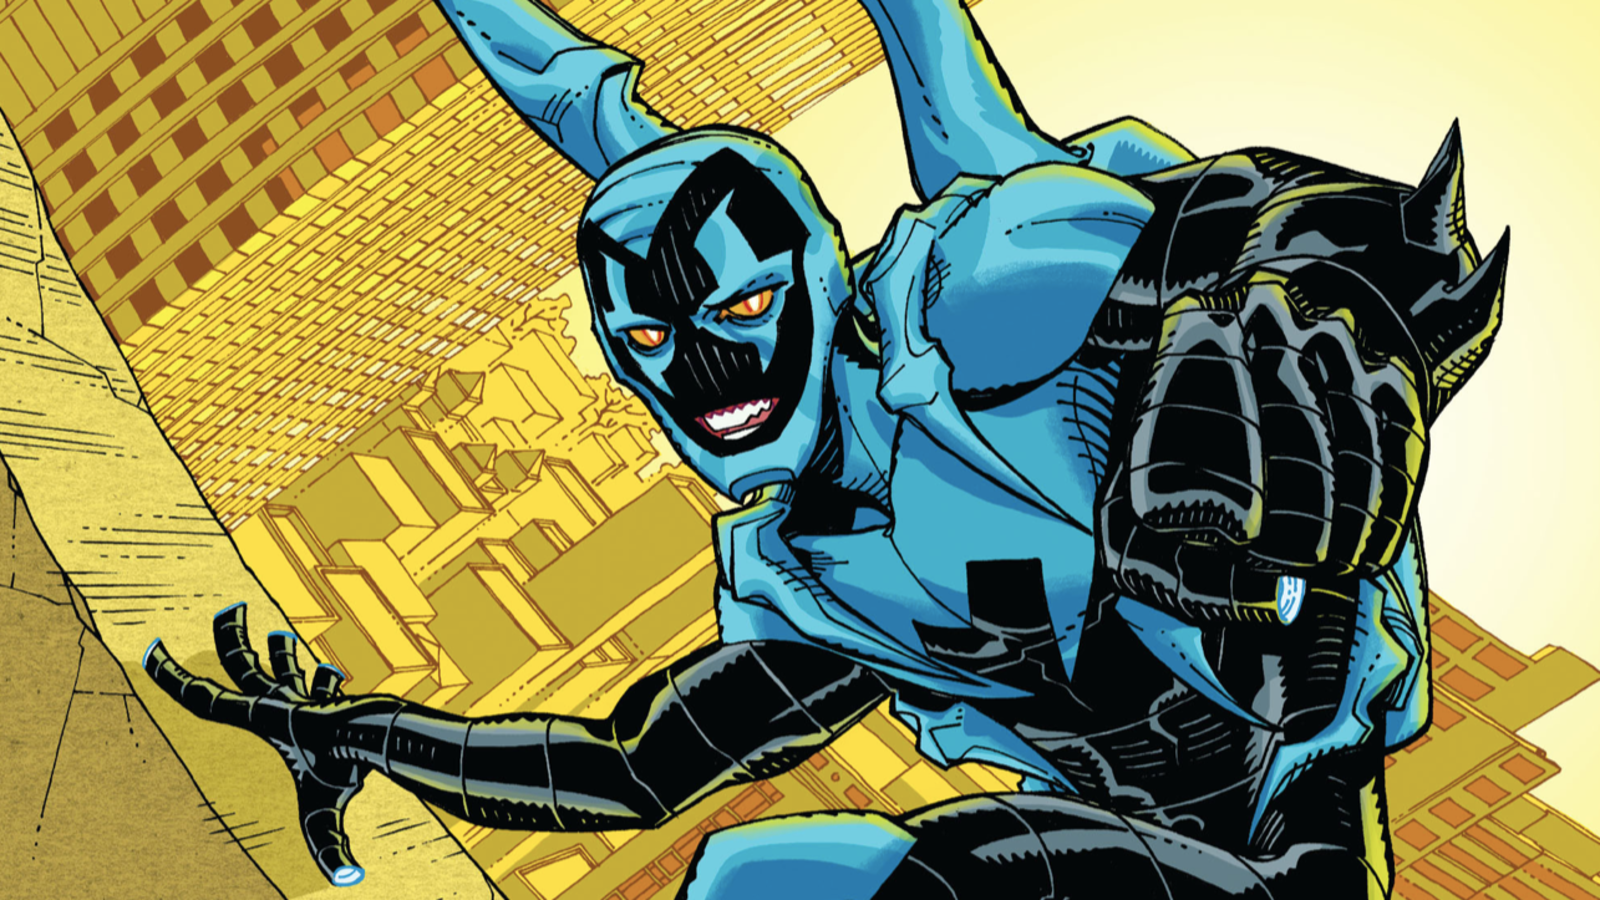 Report: DC's Next Big Screen Superhero Movie Will Star Blue Beetle Jaime Reyes Report: DC's Next Big Screen Superhero Movie Will Star Blue Beetle Jaime Reyes